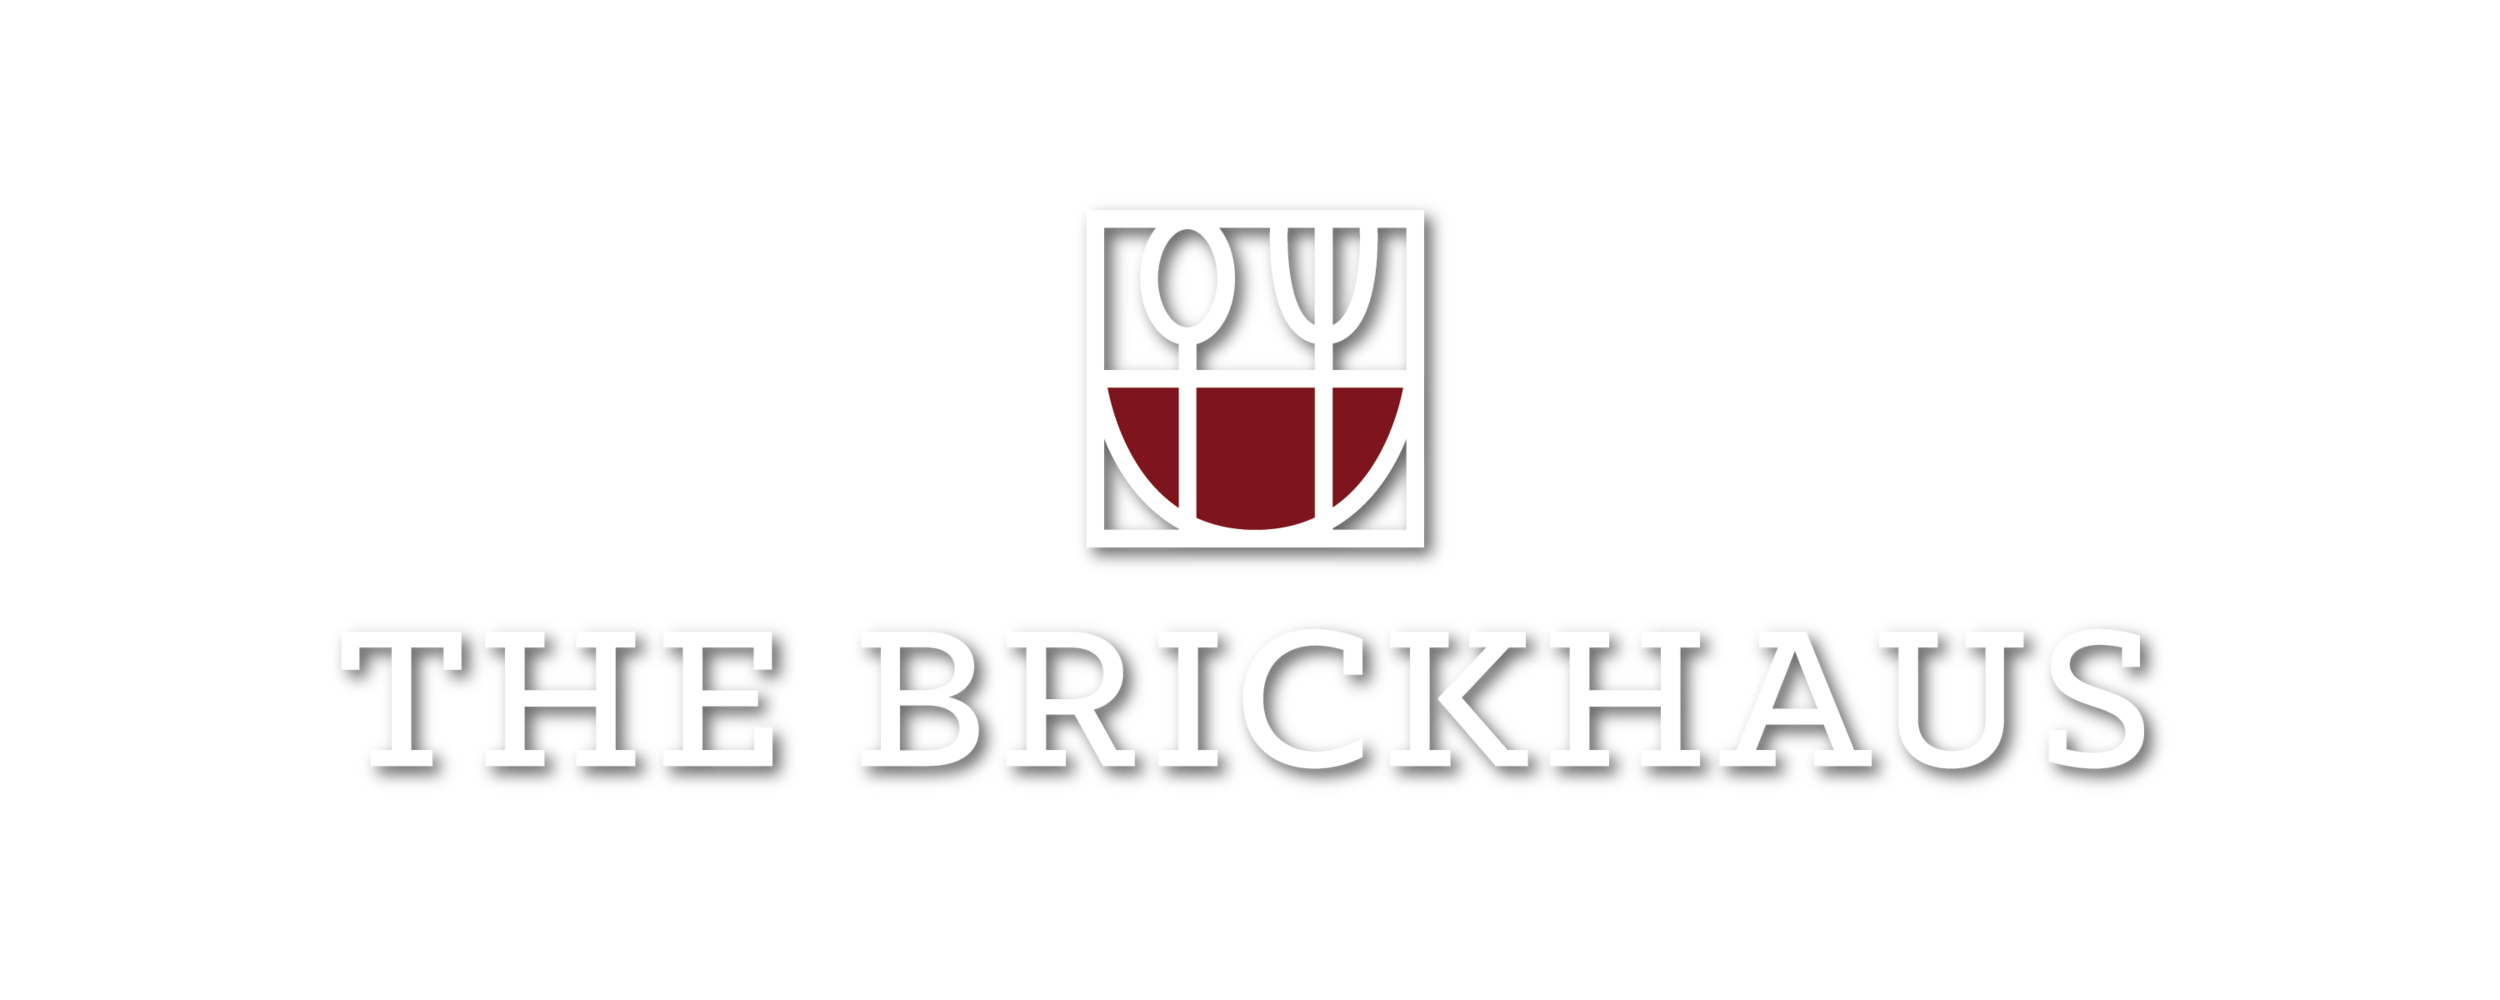 The BrickHaus